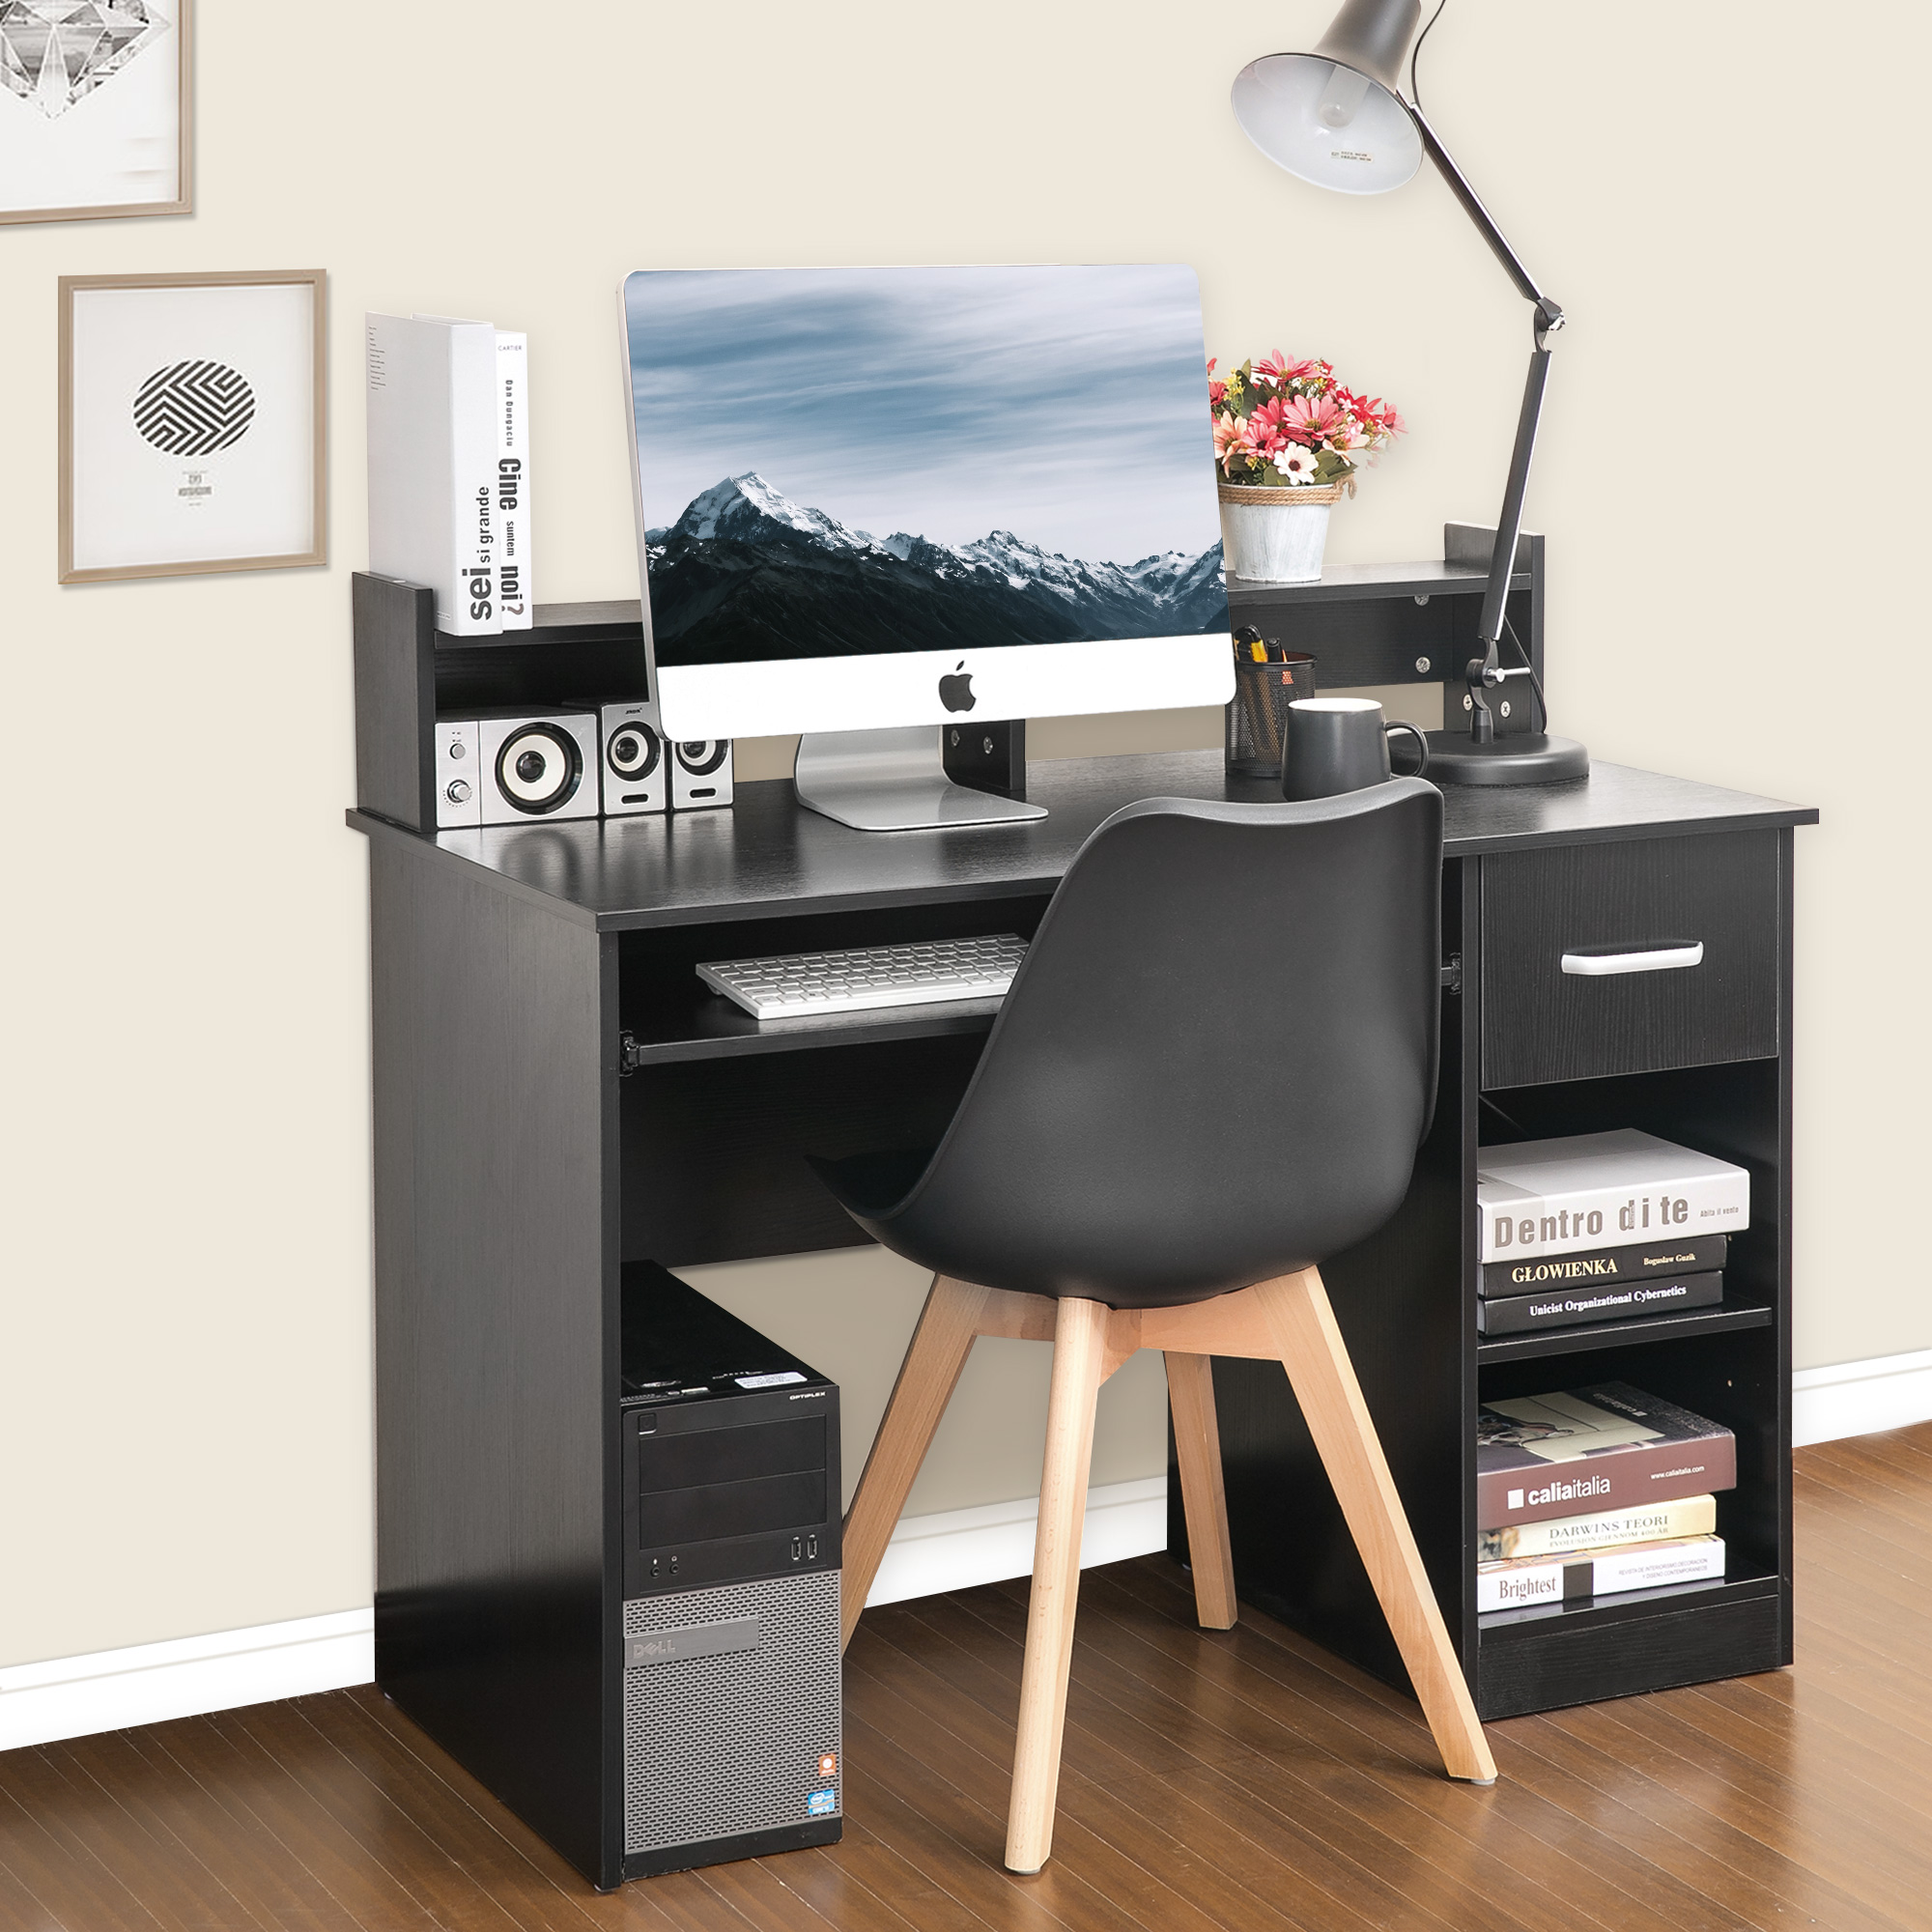 ModernLuxe Computer Desk Office Home Furniture Writing Desk with Hutch and Keyboard Tray, Black